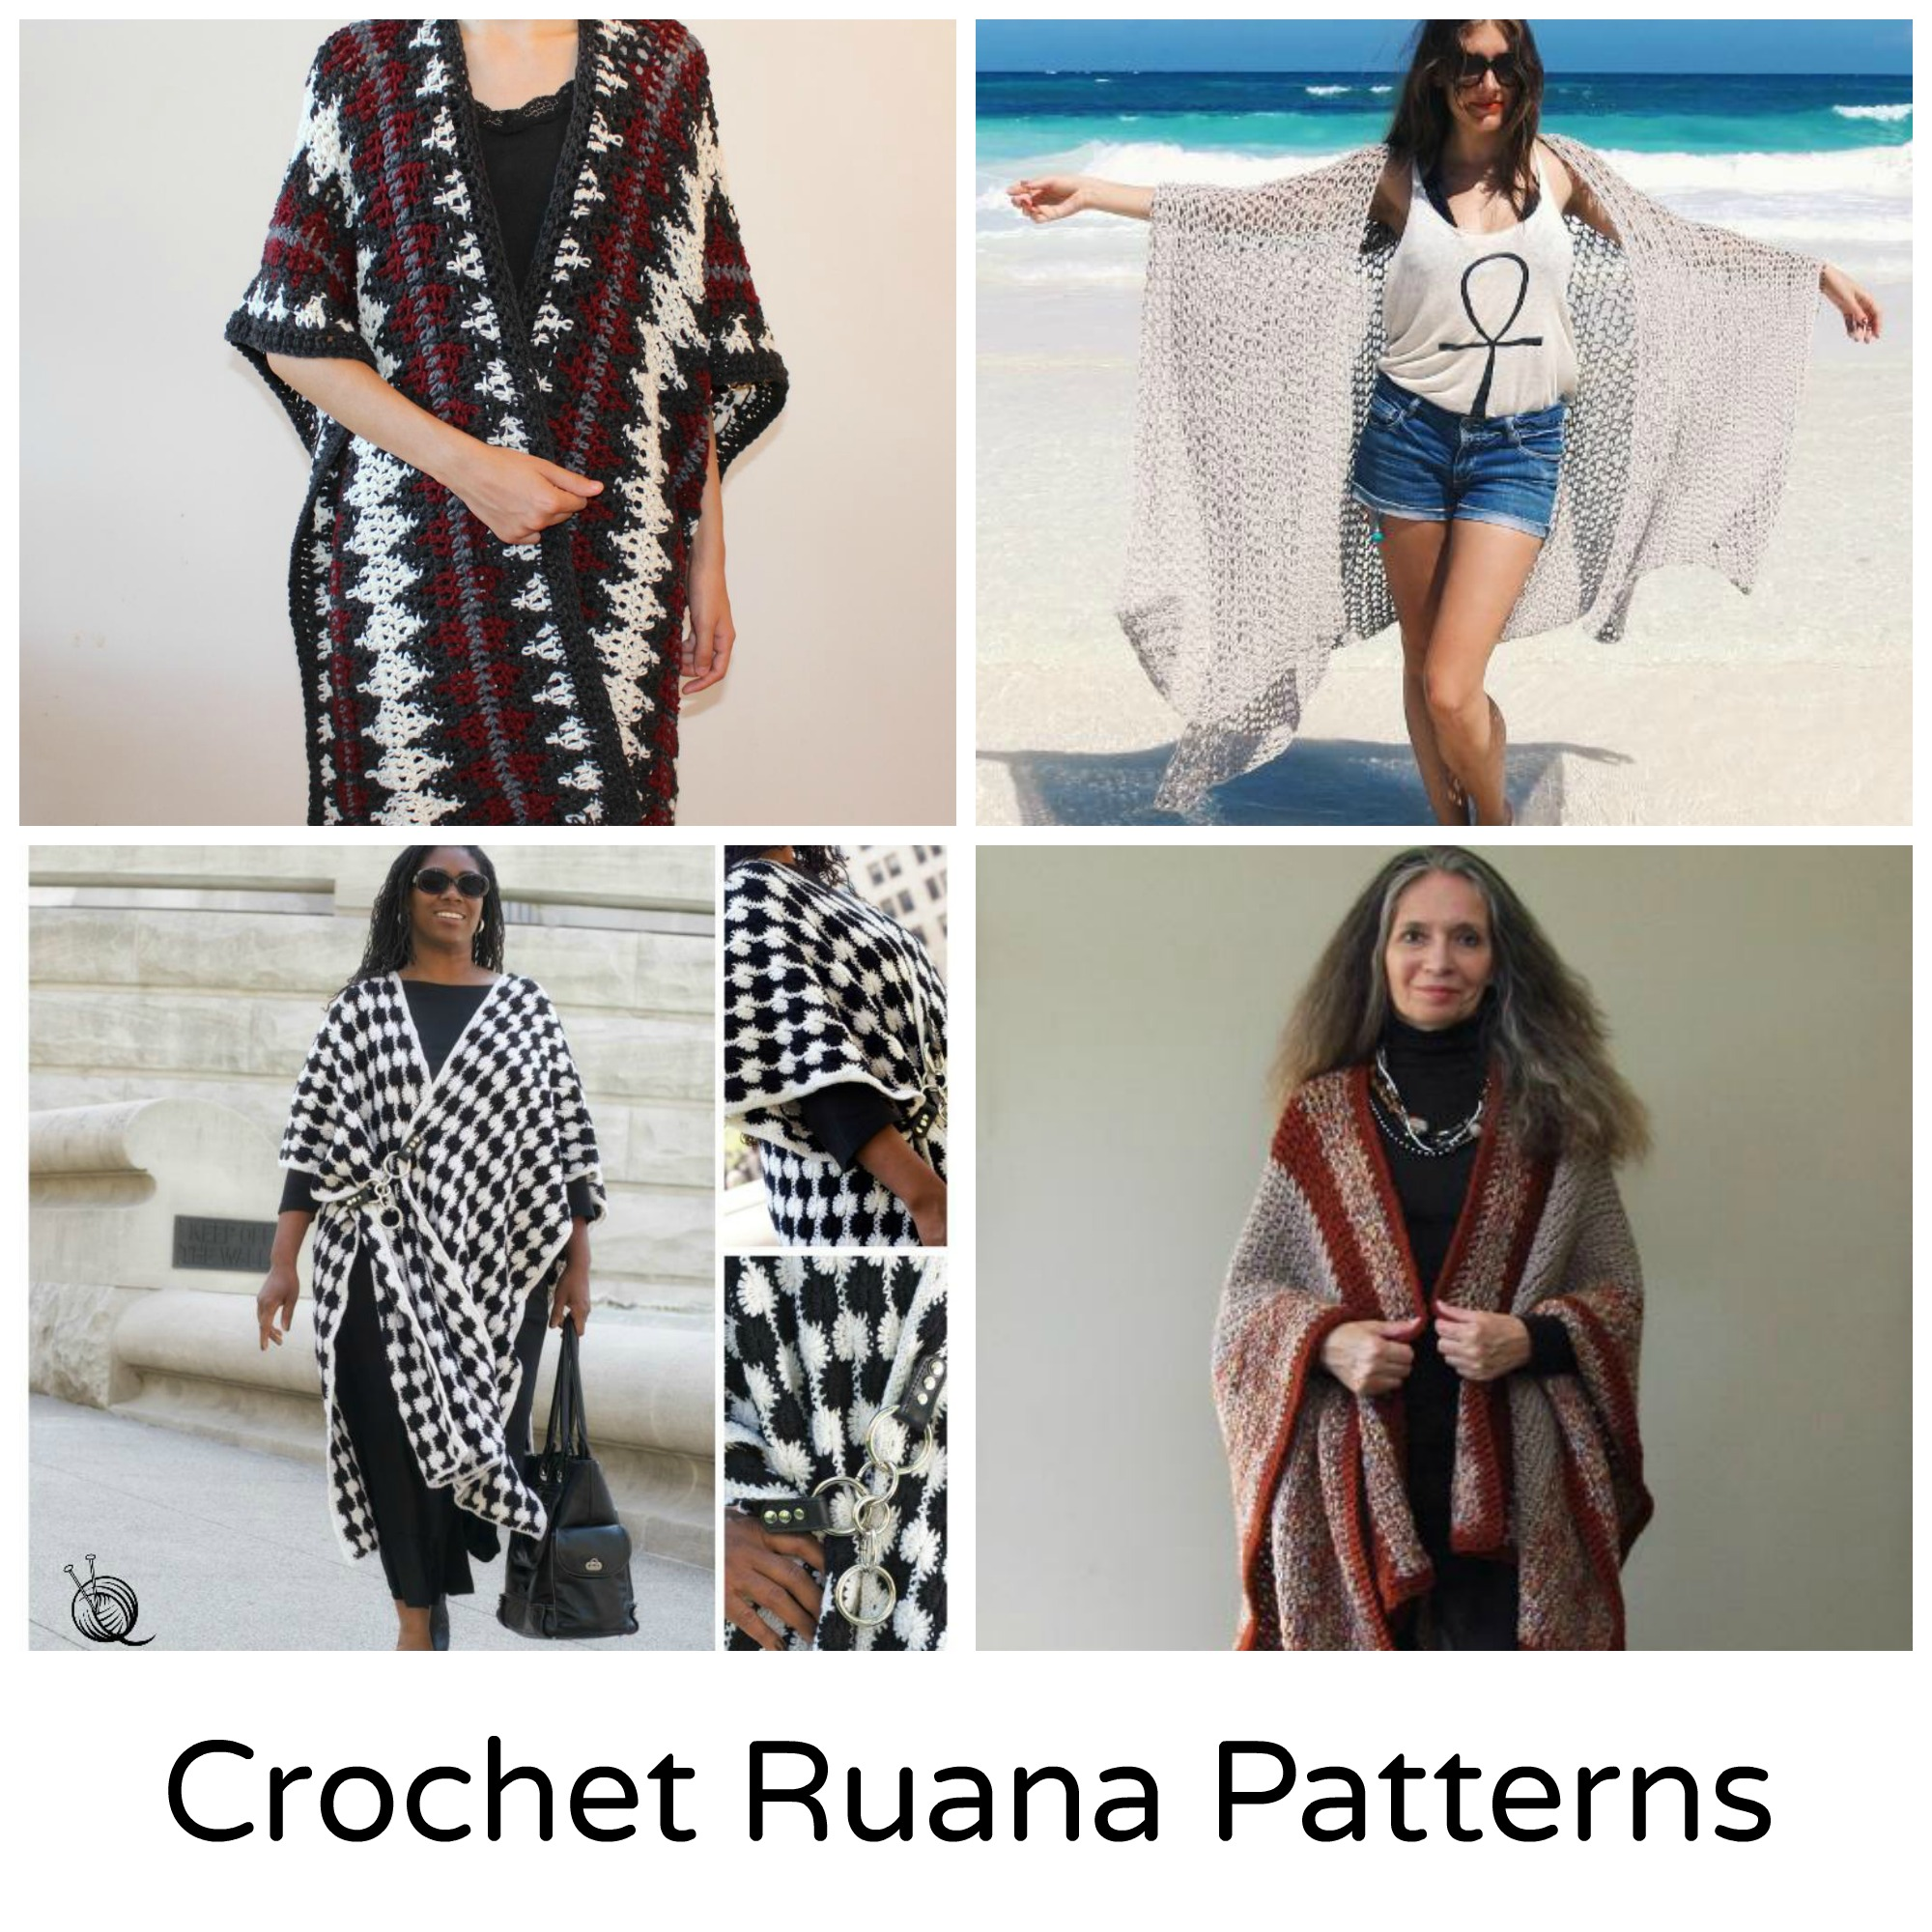 Crochet Ruana Patterns